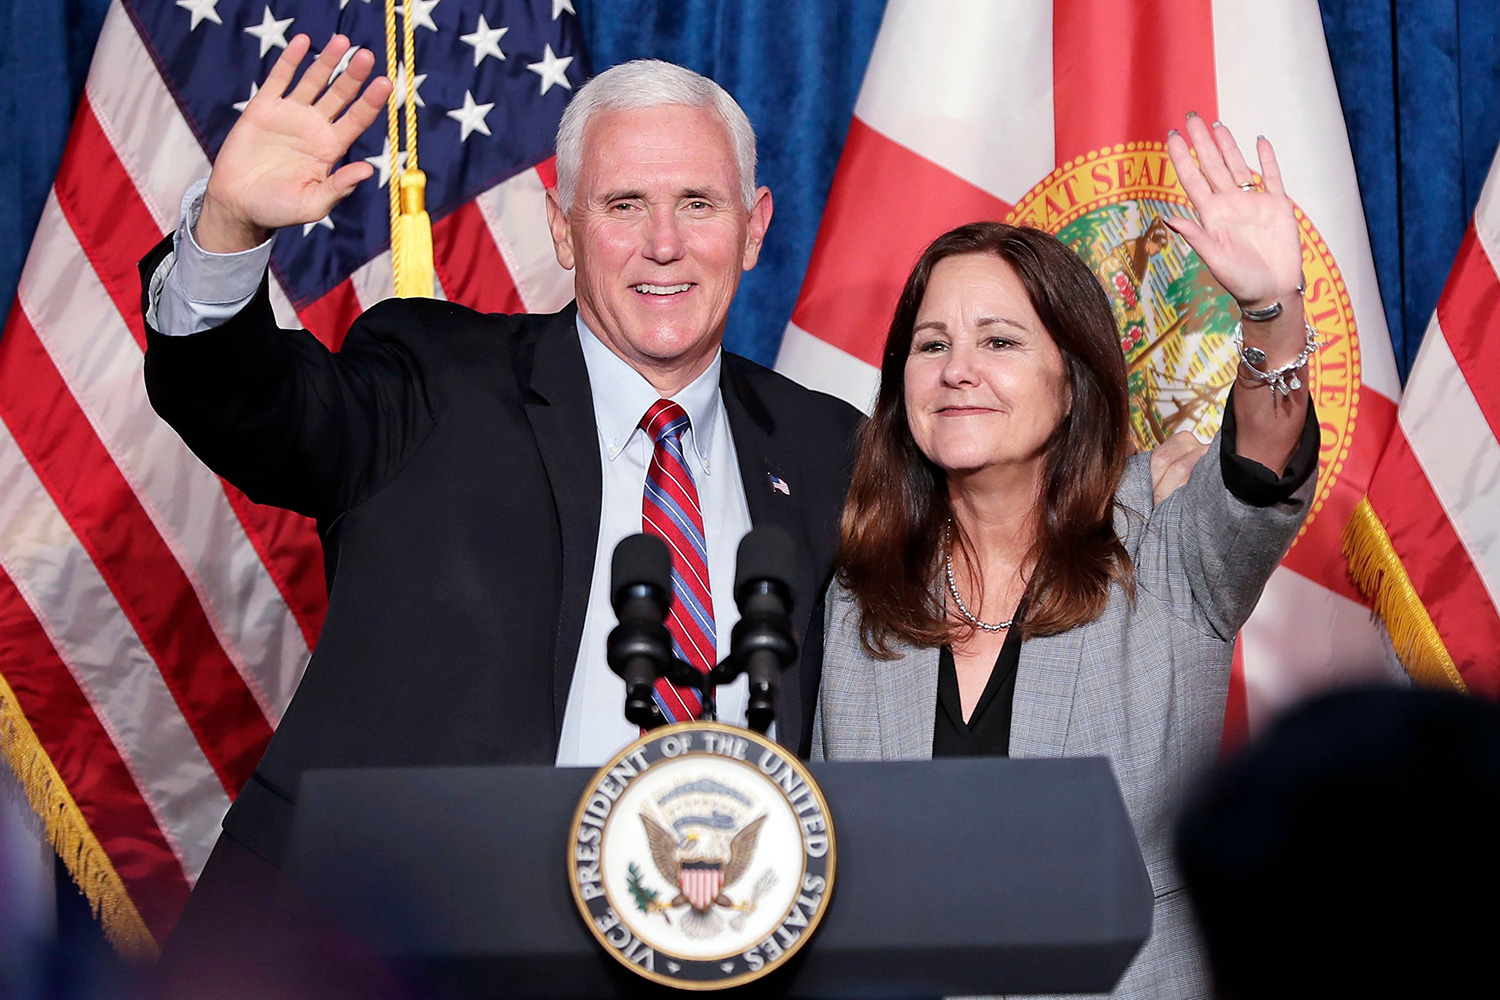 Karen Pence, wife of Vice President Mike Pence